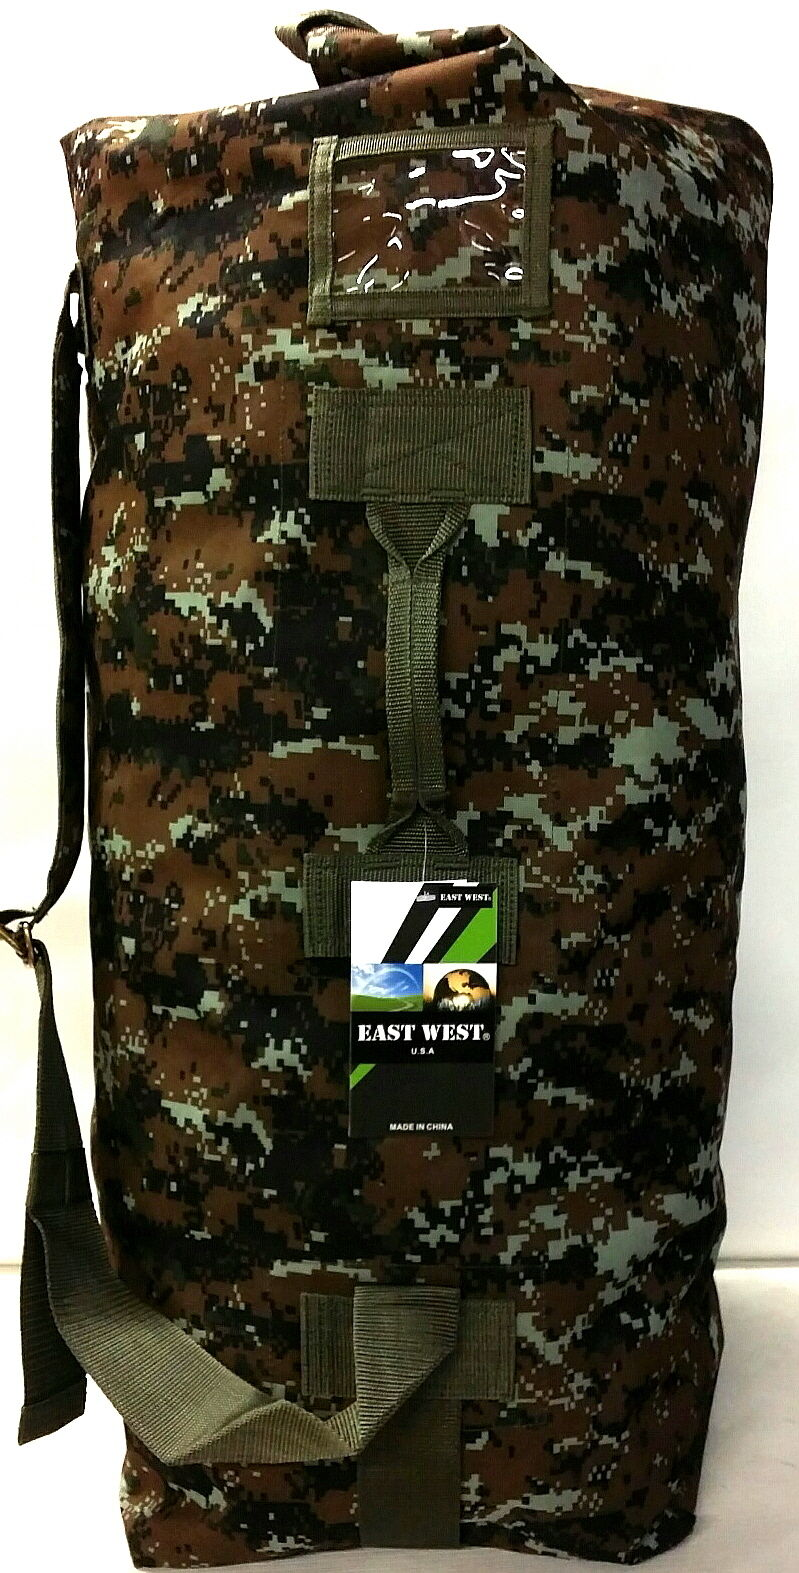 "ARMY DUFFELBAG Large Hunting Gear Duffel Bag Duffle 42"" Inches Travel ..."